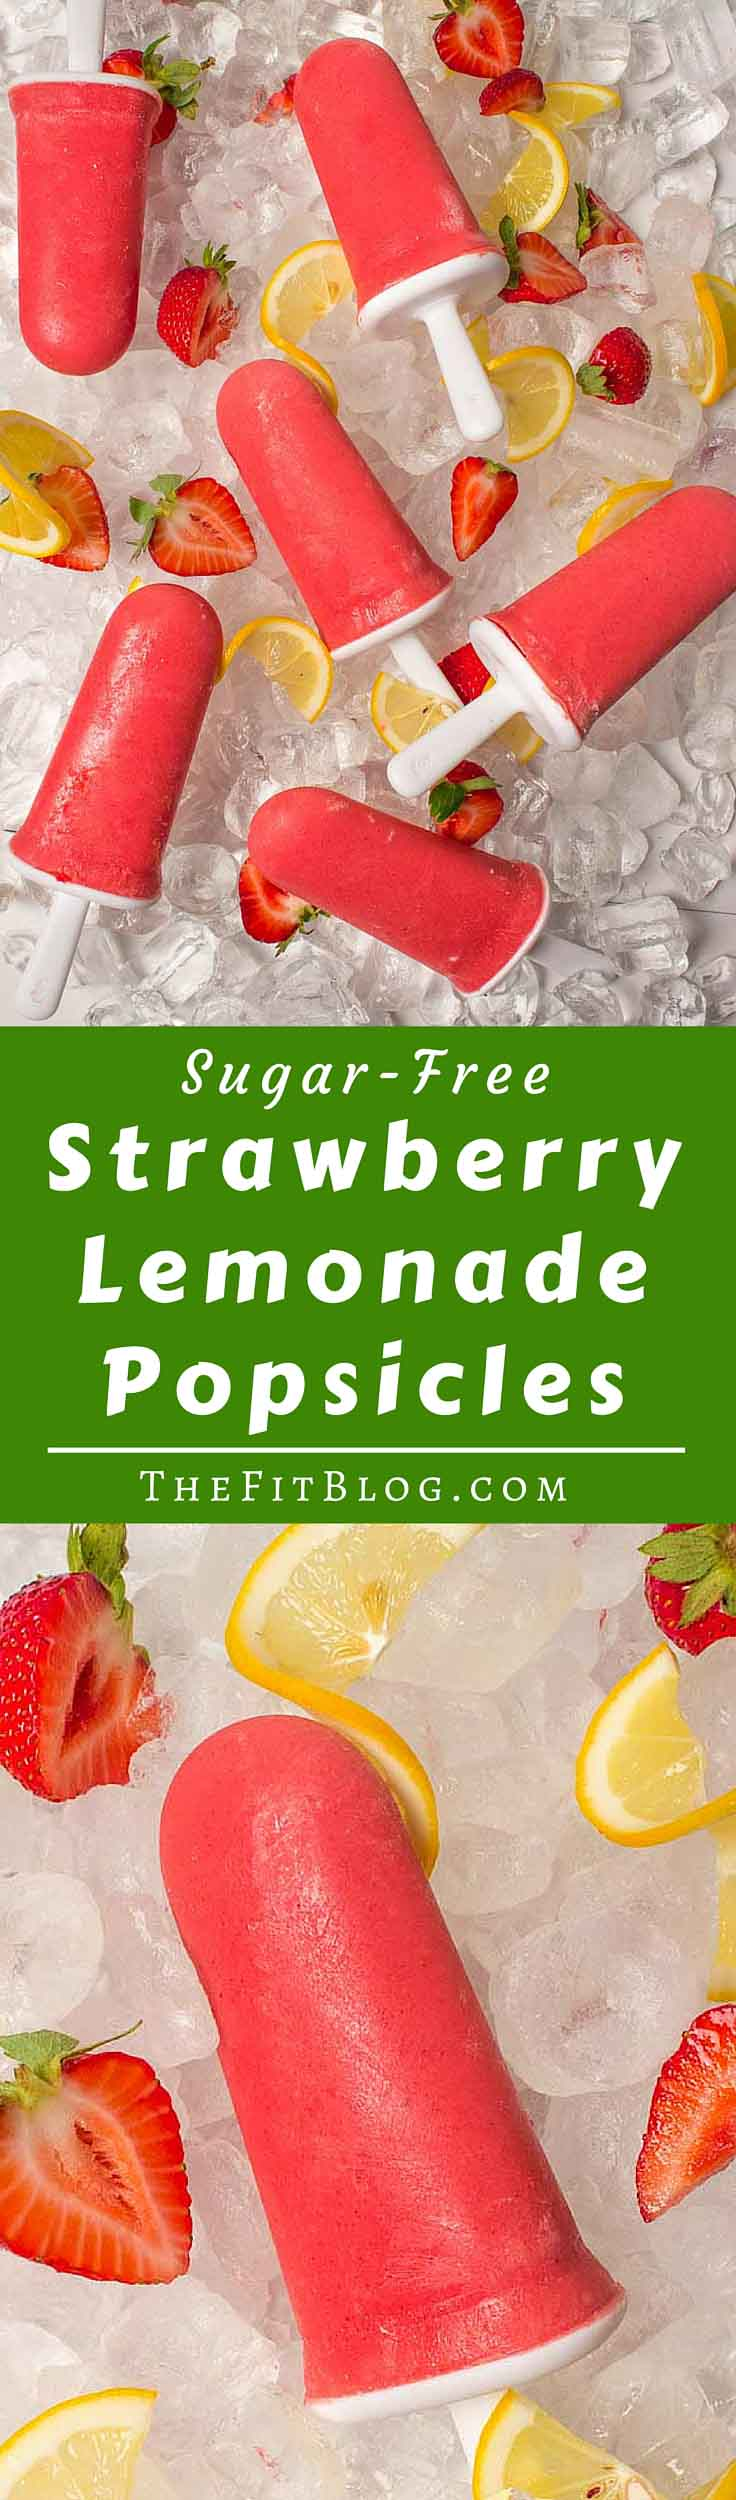 Sugar Free Strawberry Lemonade Popsicles – Nothing is better at fighting the summer heat than these deliciously cool, sugar-free, low-carb, healthy popsicles